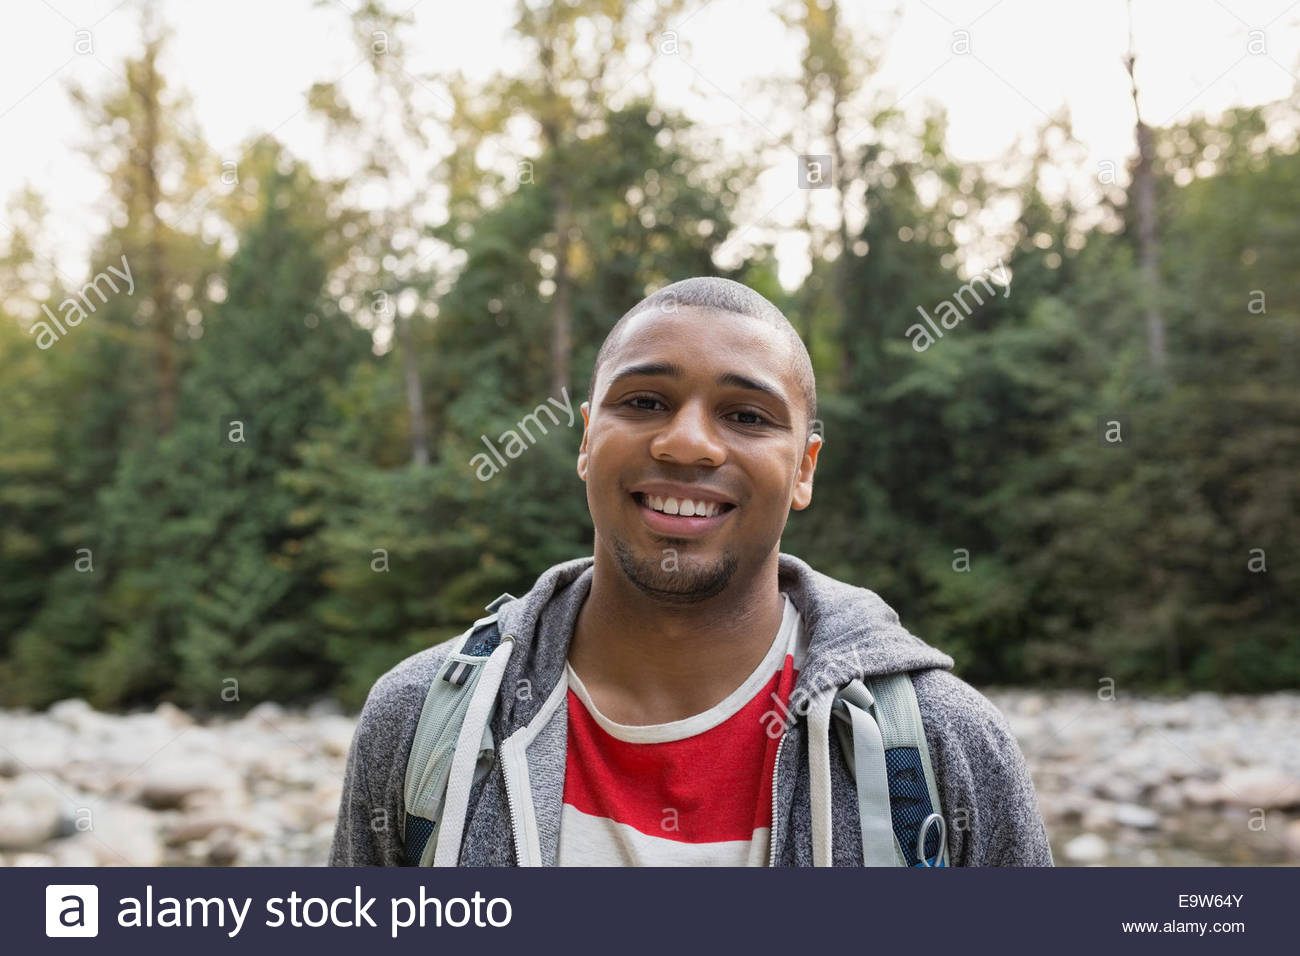 Portrait of smiling man in woods - Stock Image